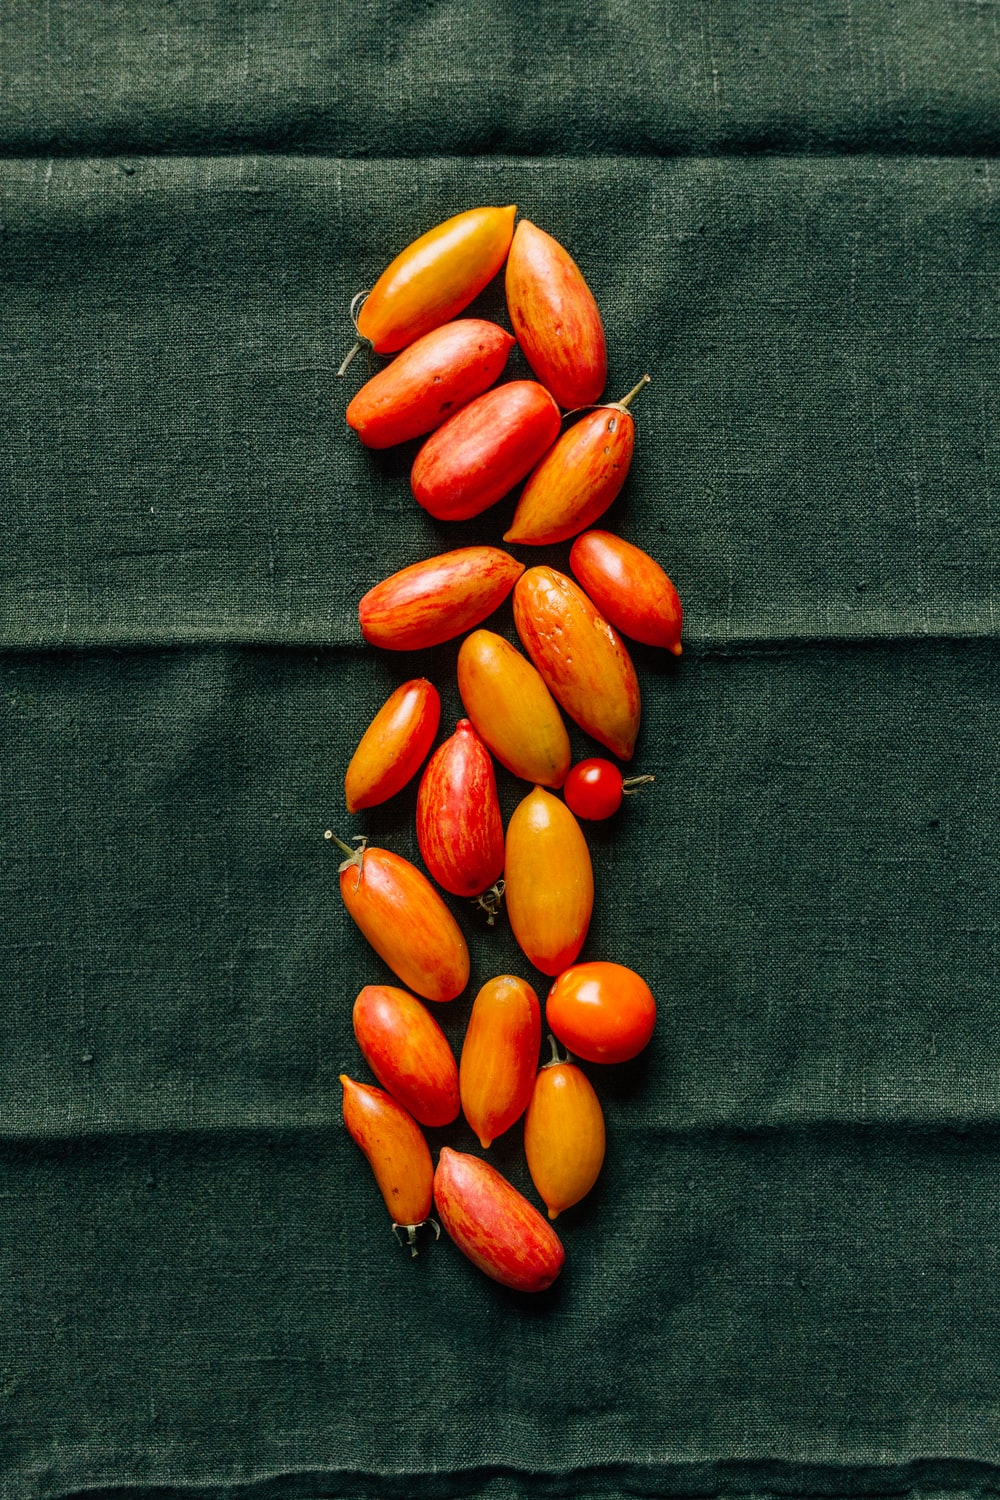 red and brown beans on black textile